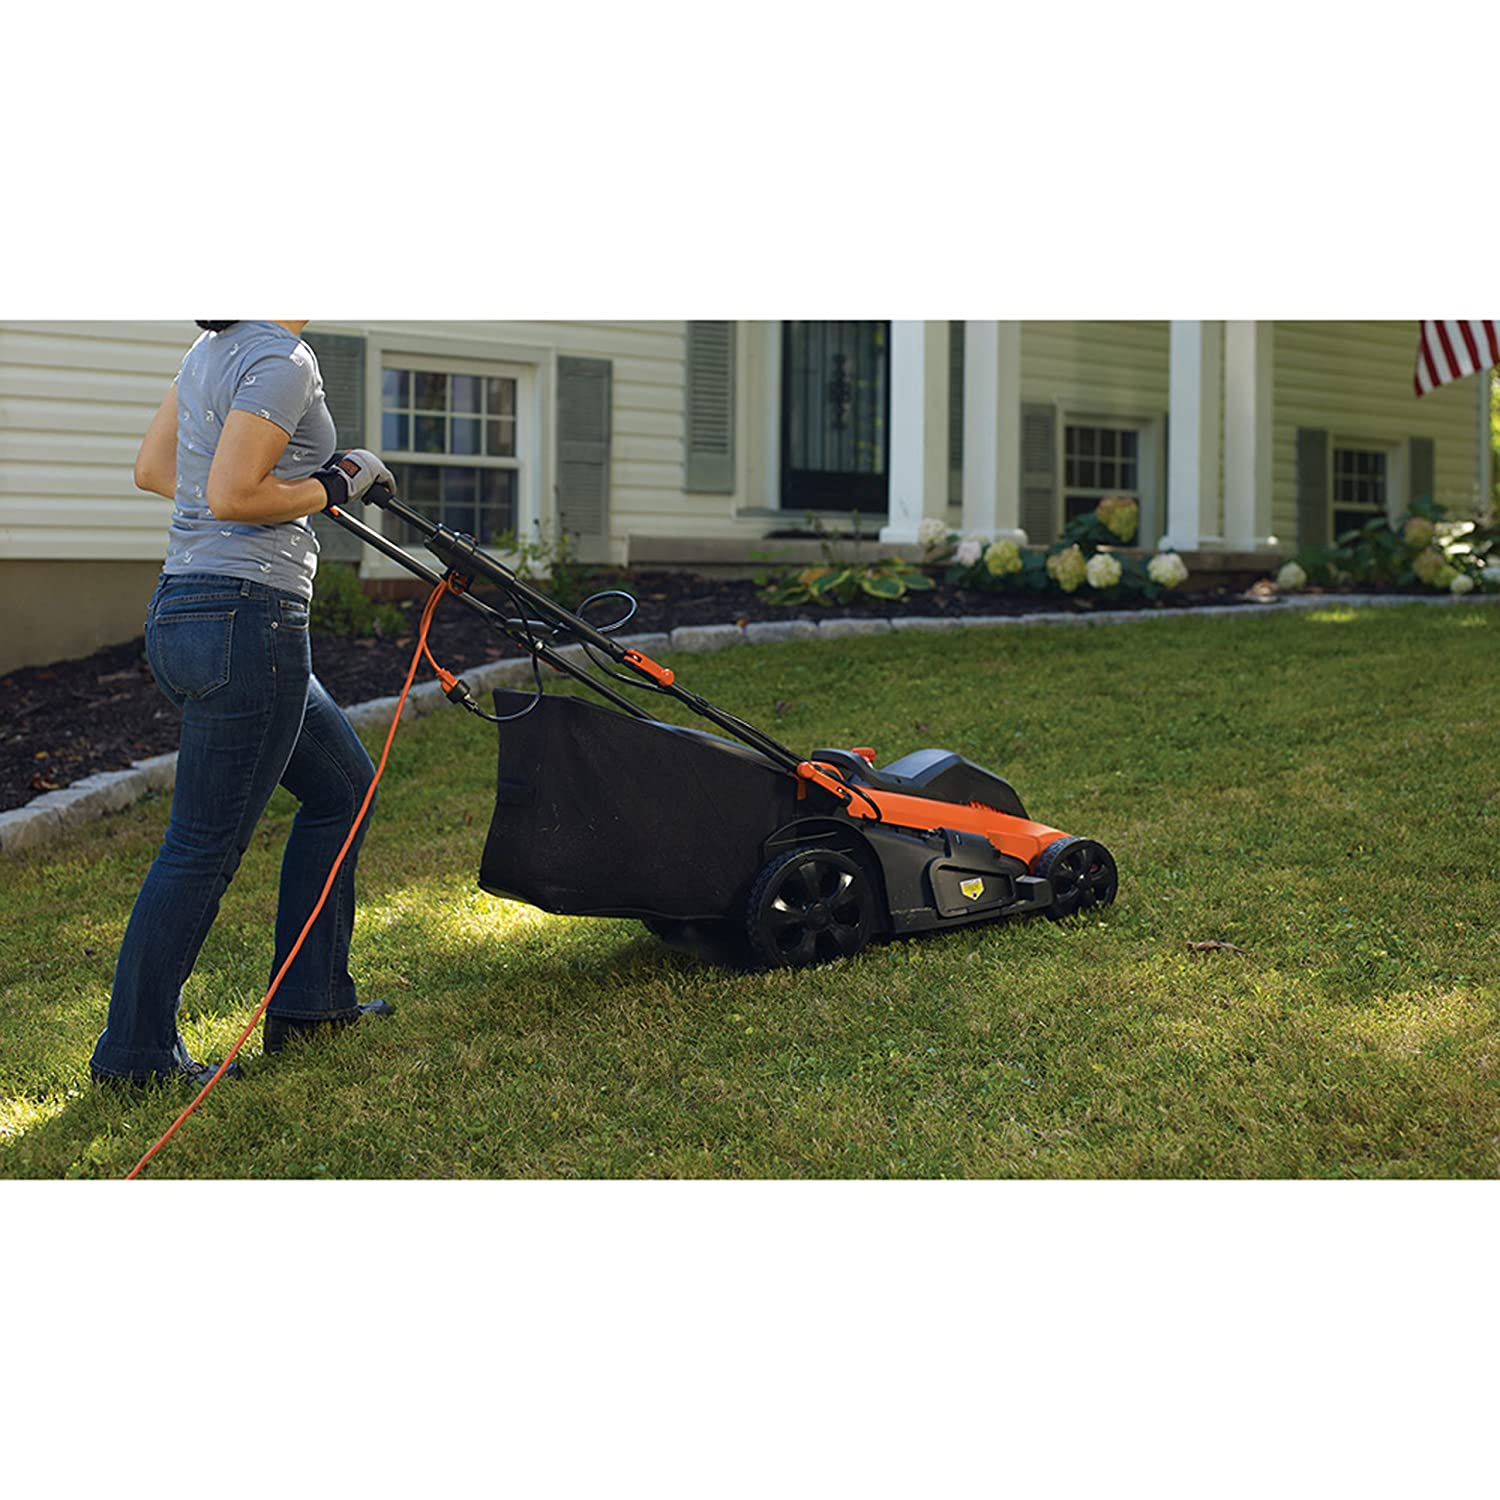 2000W, 48cm Cutting Width, 50Litre Grass Box with 7Different Cutting Heights 38–100mm Grass Trimmer, Decker LM2000 3-in-1EdgeMax Electric Lawn Mower Black